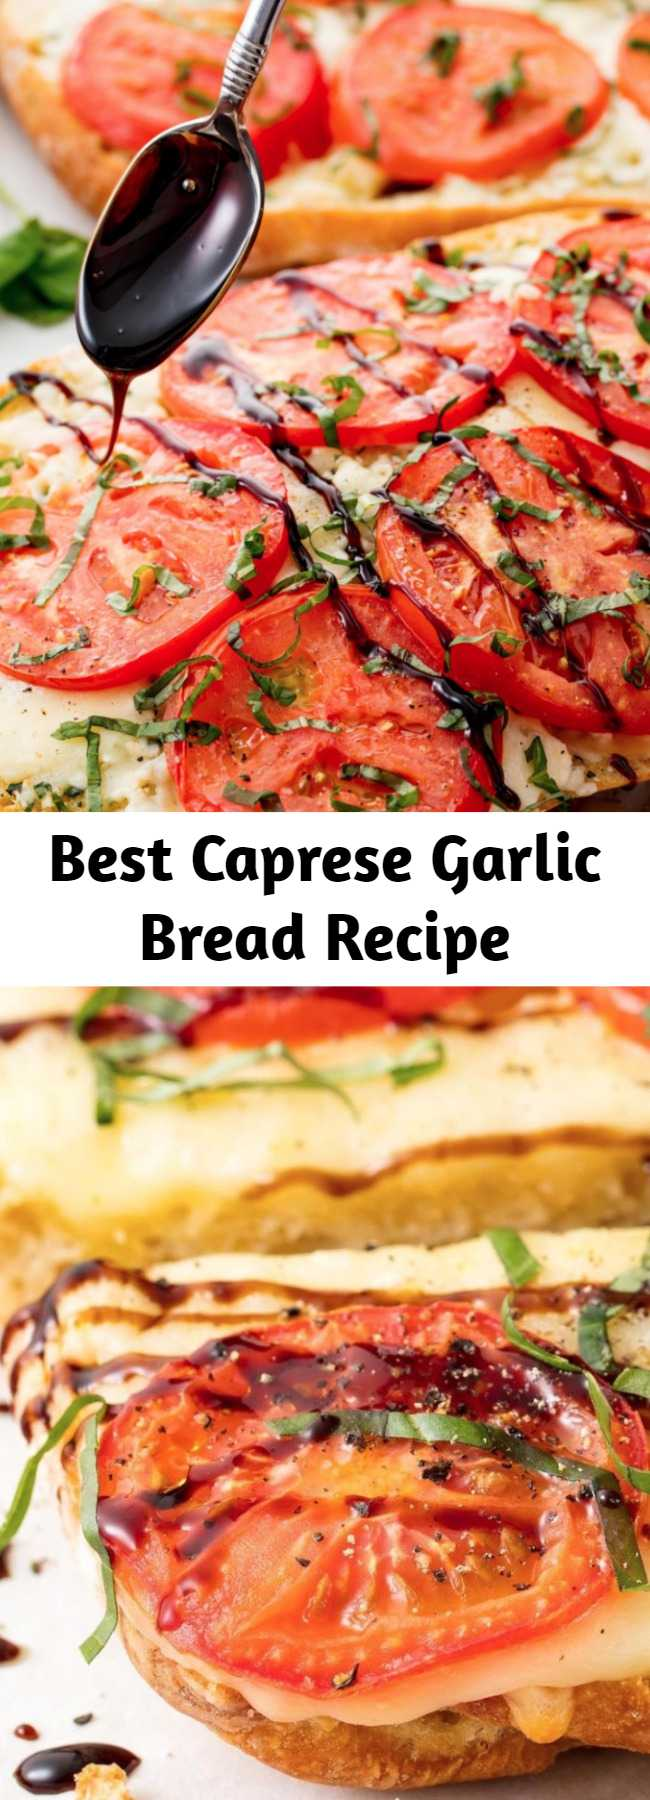 Best Caprese Garlic Bread Recipe - Looking for a garlic bread recipe? This Caprese Garlic Bread is the best. This recipe is even wonderful when tomatoes aren't in season. In the oven, sad-looking slices take on a deeper, sweeter, more tomato-y flavor. If you don't want to make your own balsamic glaze, you can find it bottled at most grocery stores.